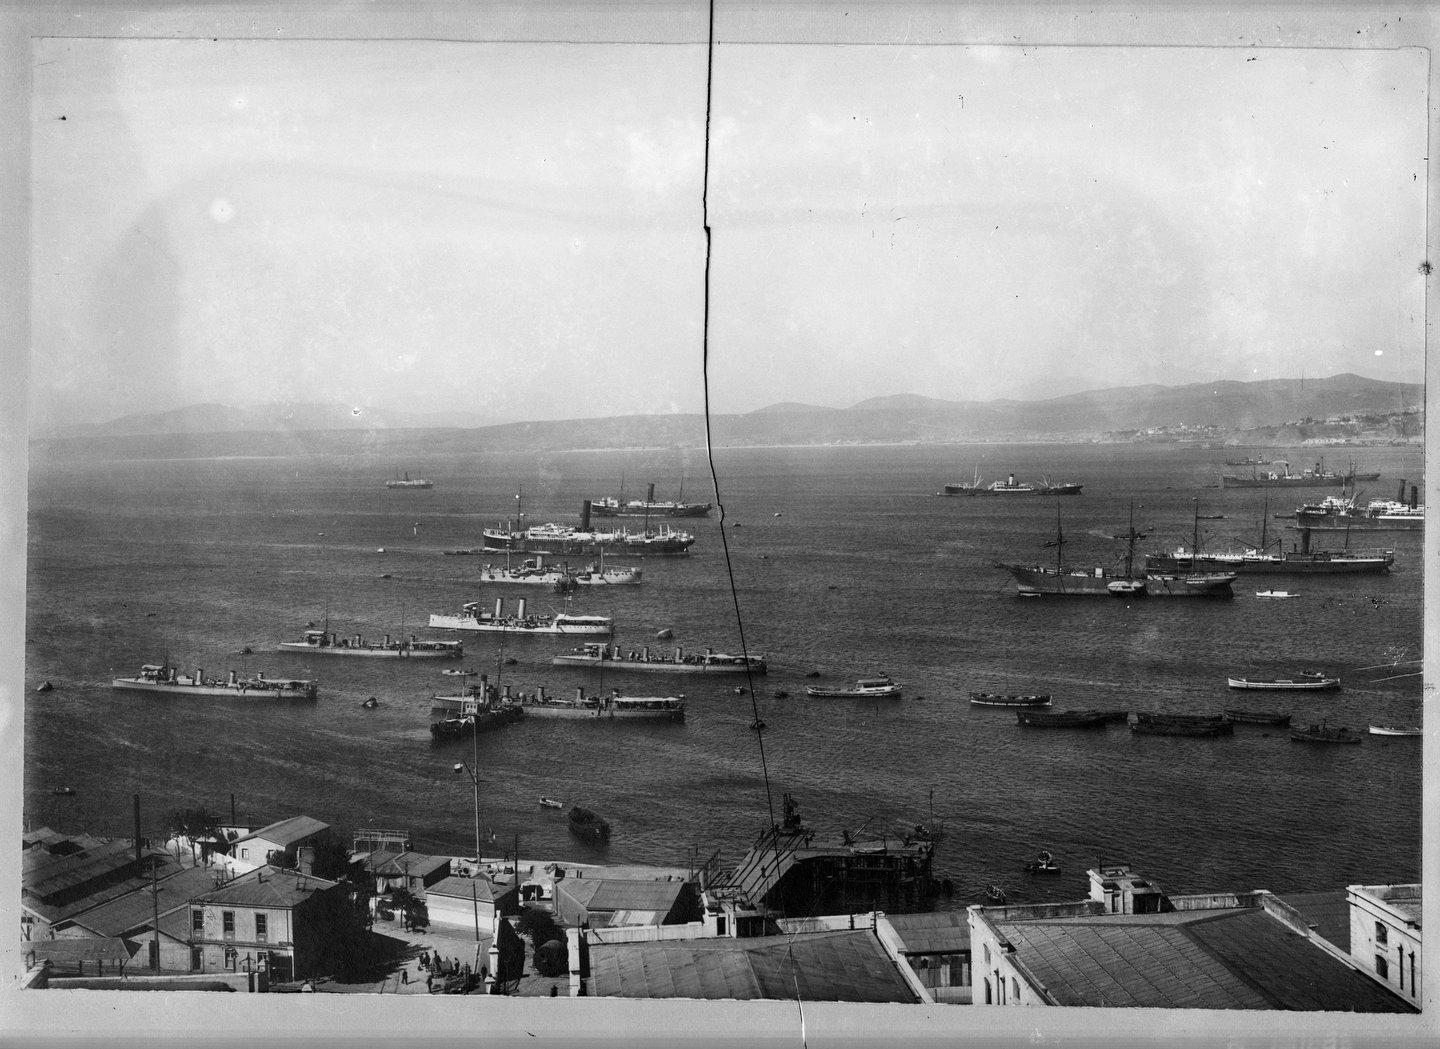 Enterreno - Fotos históricas de chile - fotos antiguas de Chile - Bahia Valparaiso en 1911